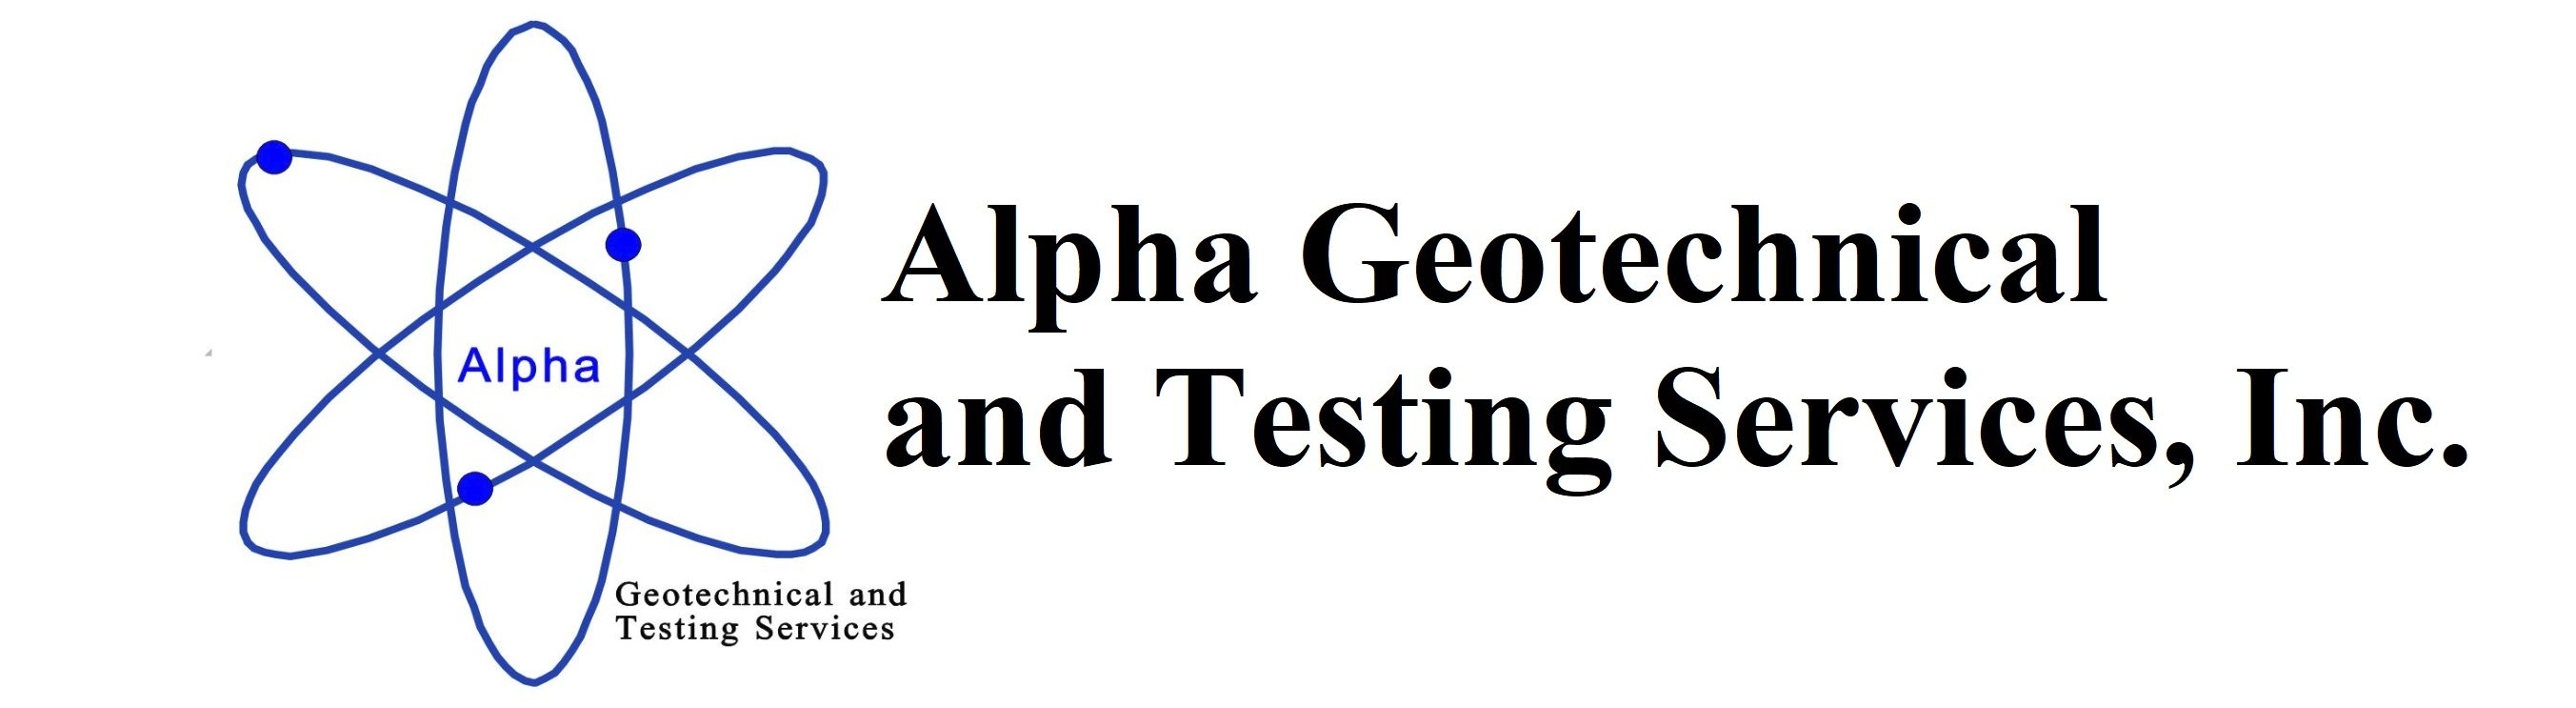 Alpha Geotechnical and Testing Services, Inc.